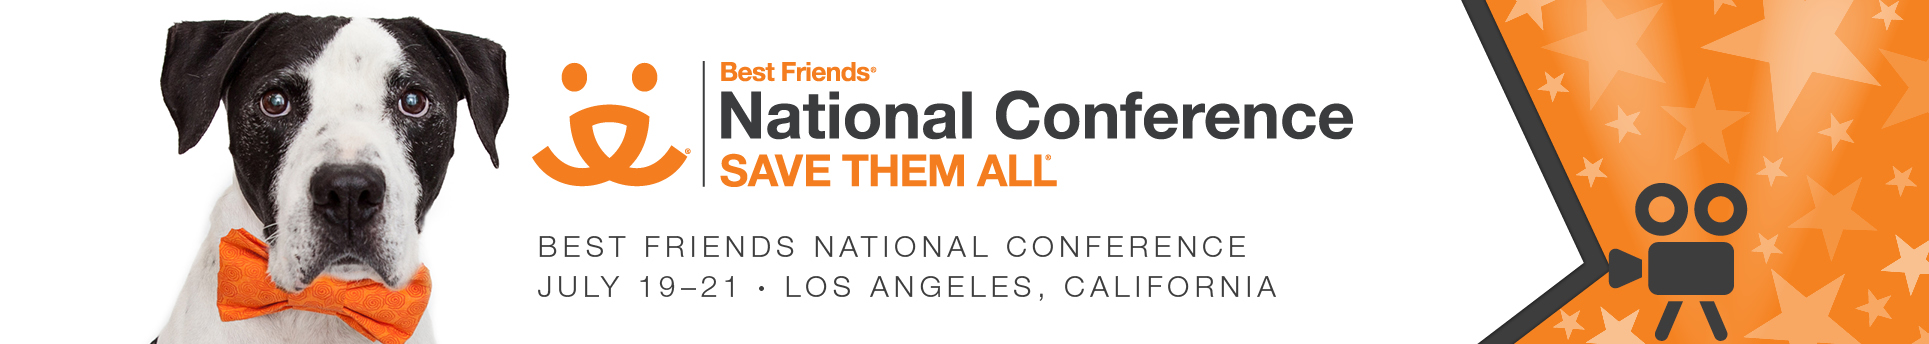 2018 Best Friends National Conference